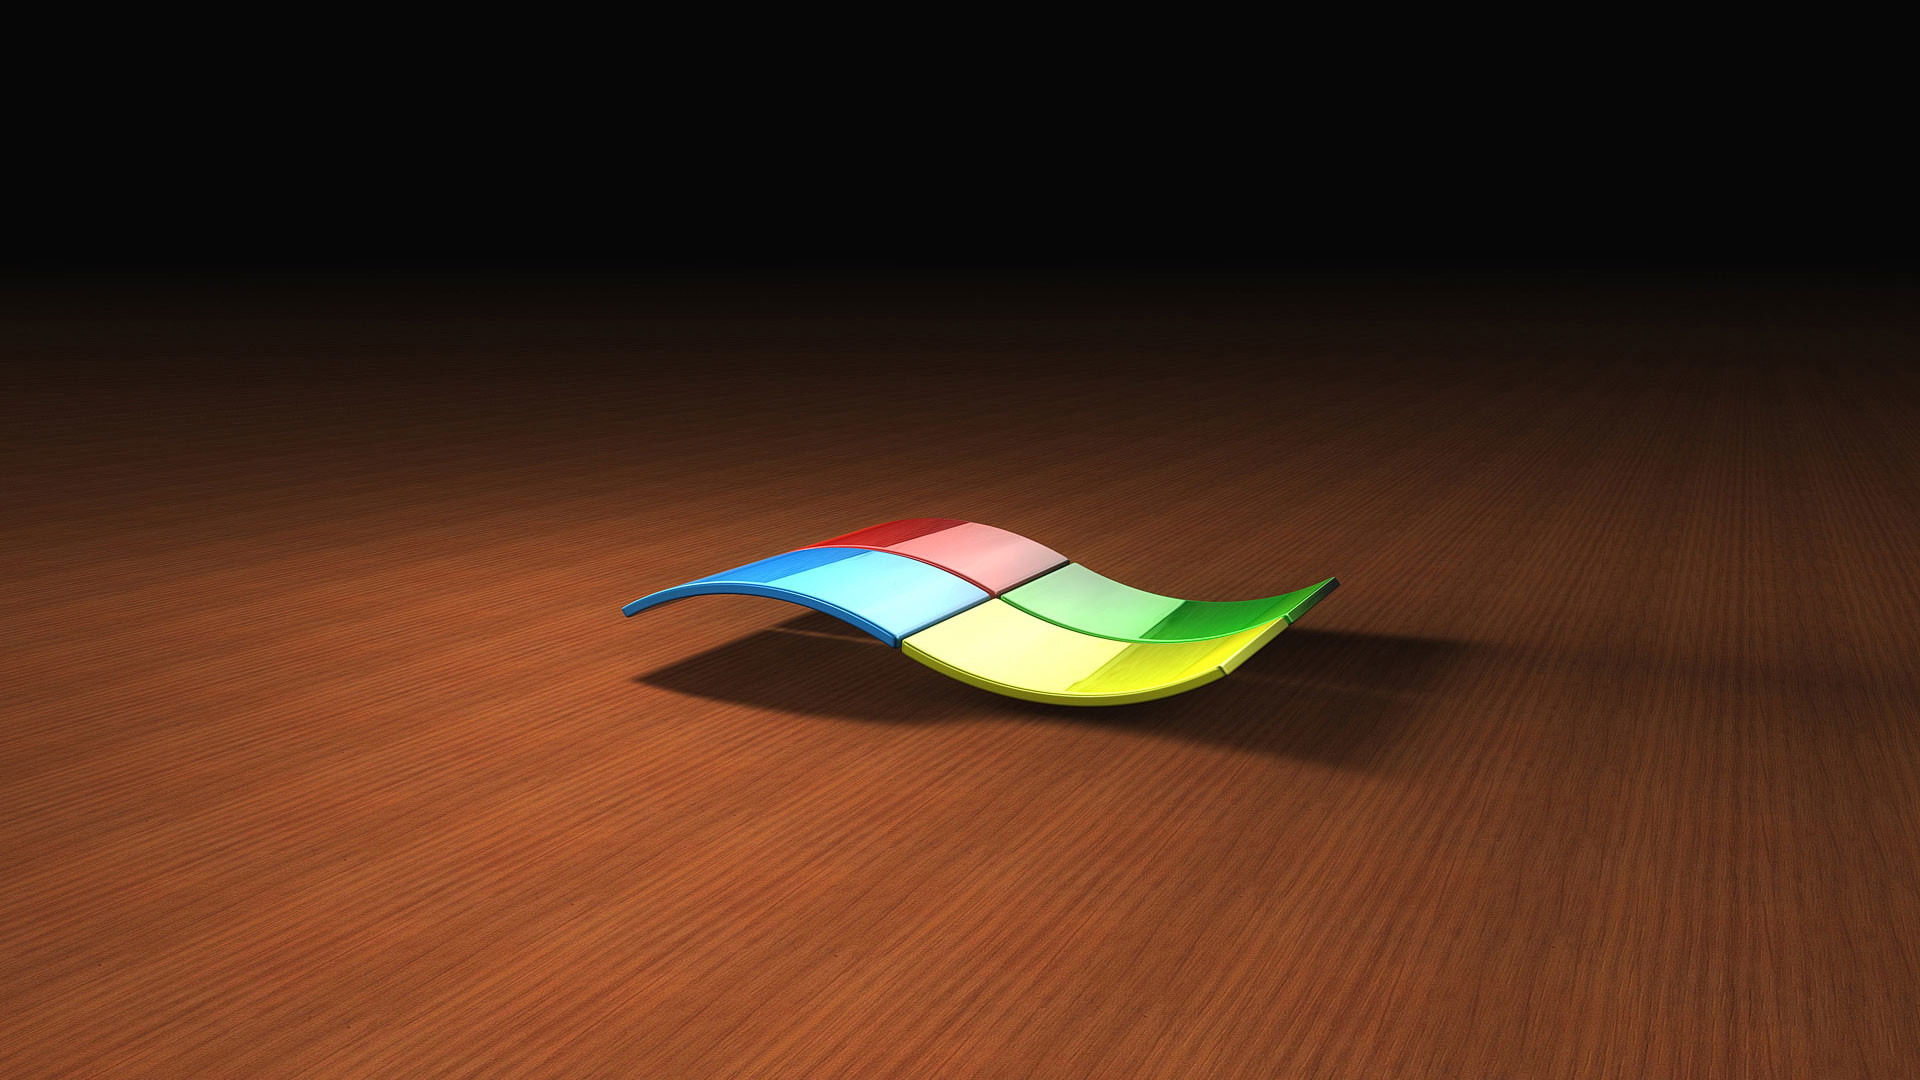 Wallpaper For Pc Windows 7 65 Pictures